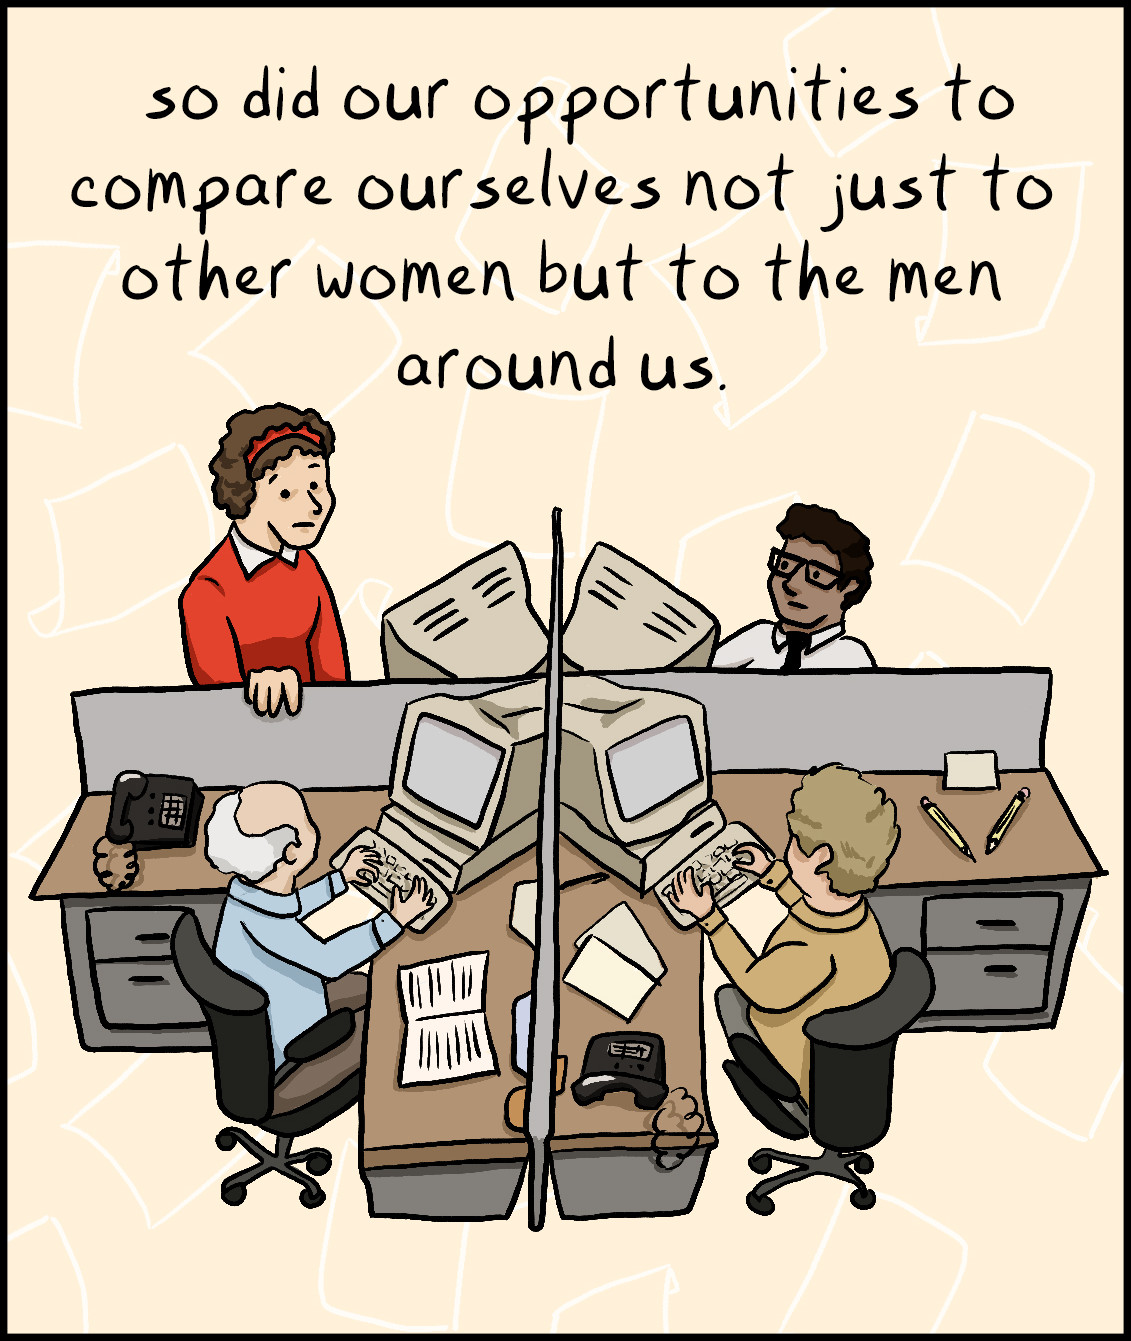 so did our opportunities to compare ourselves not just to other women but to the men around us.